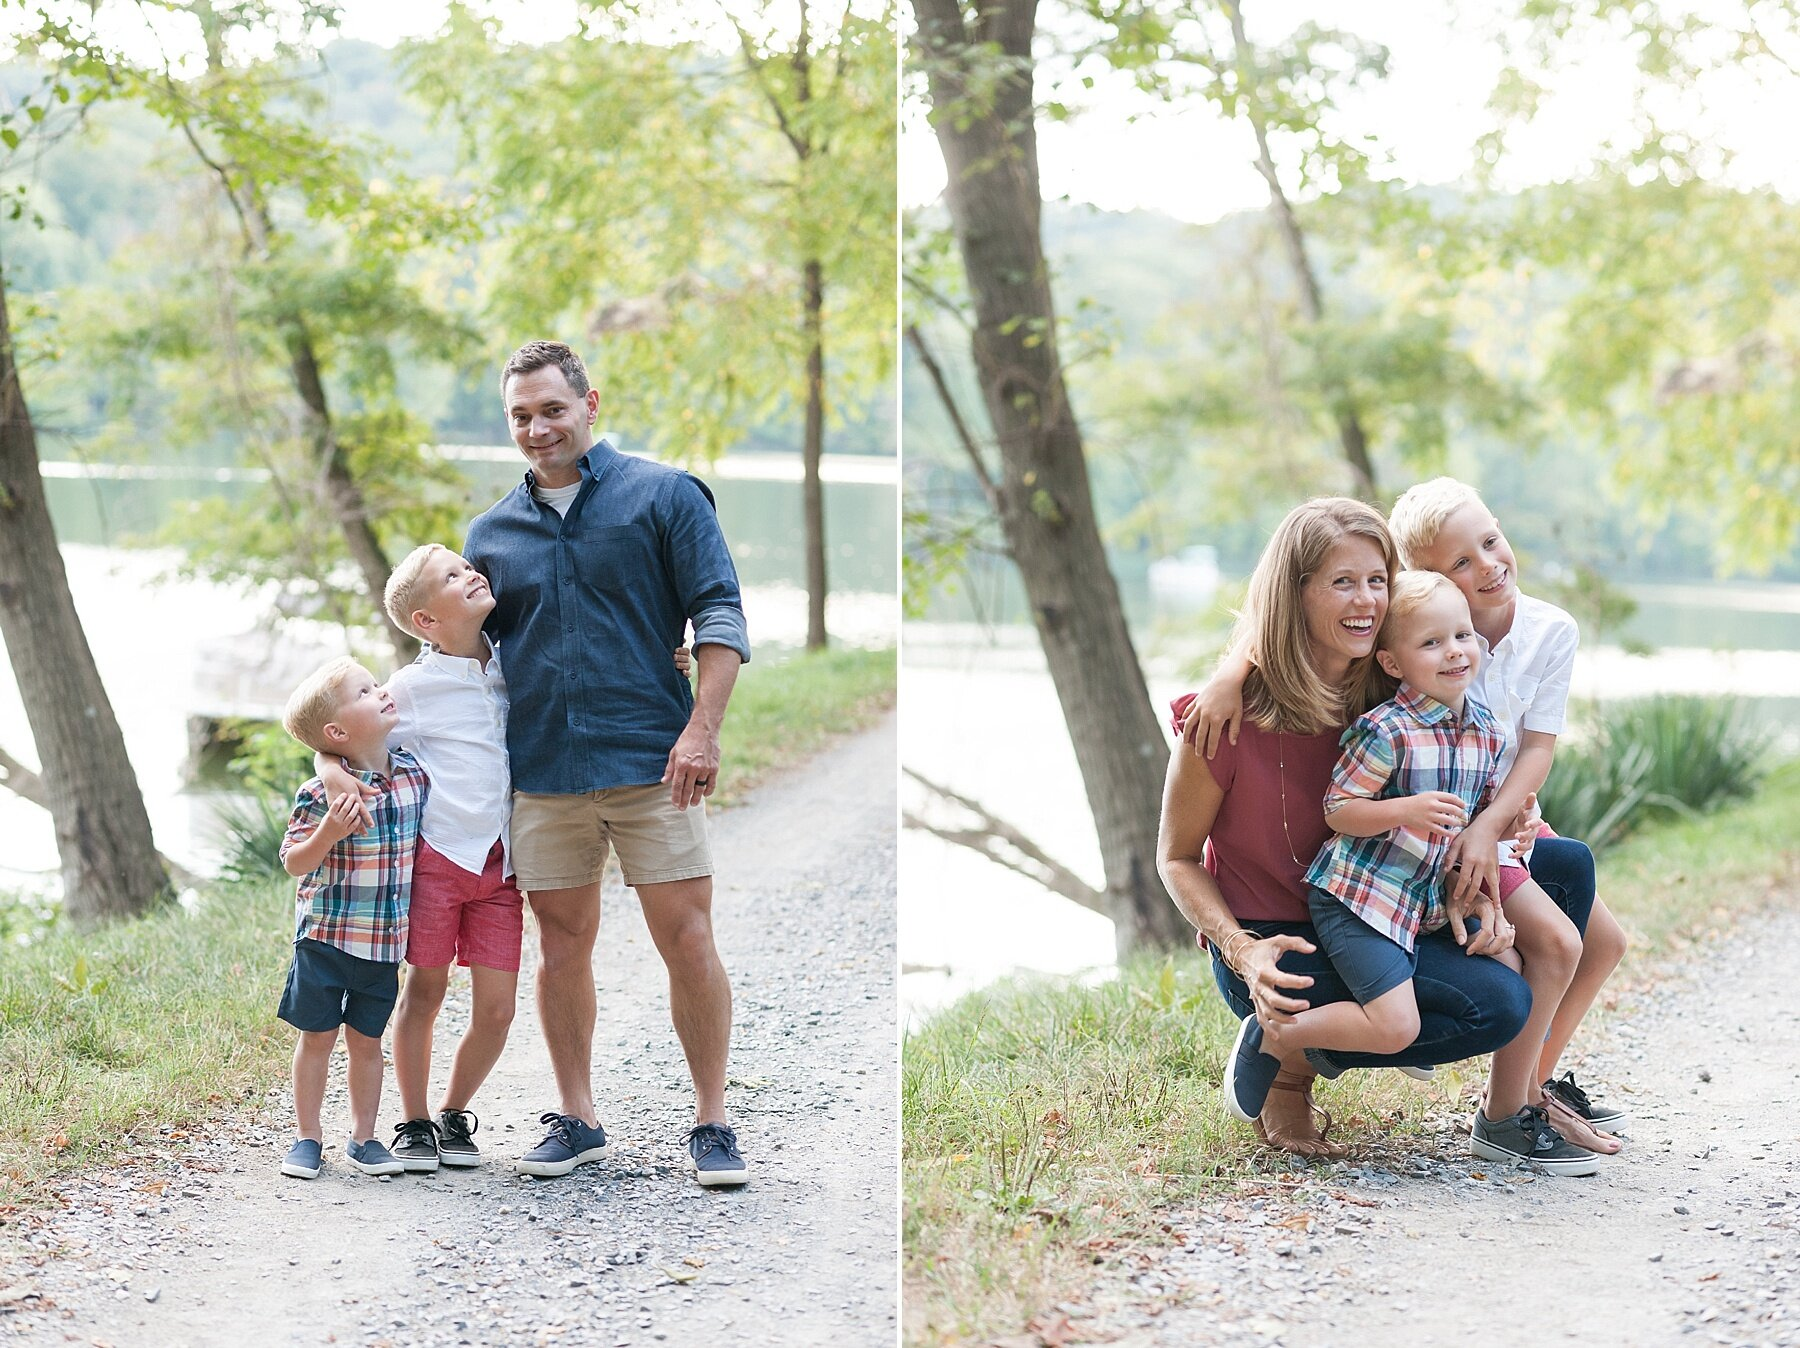 Wendy Zook Photography | Frederick MD family photographer, Frederick family photographer, Maryland family photographer, Maryland family photos, Frederick MD family photos, Lake Linganore family photos, Lake Linganore family session, Lake Linganore family photo session